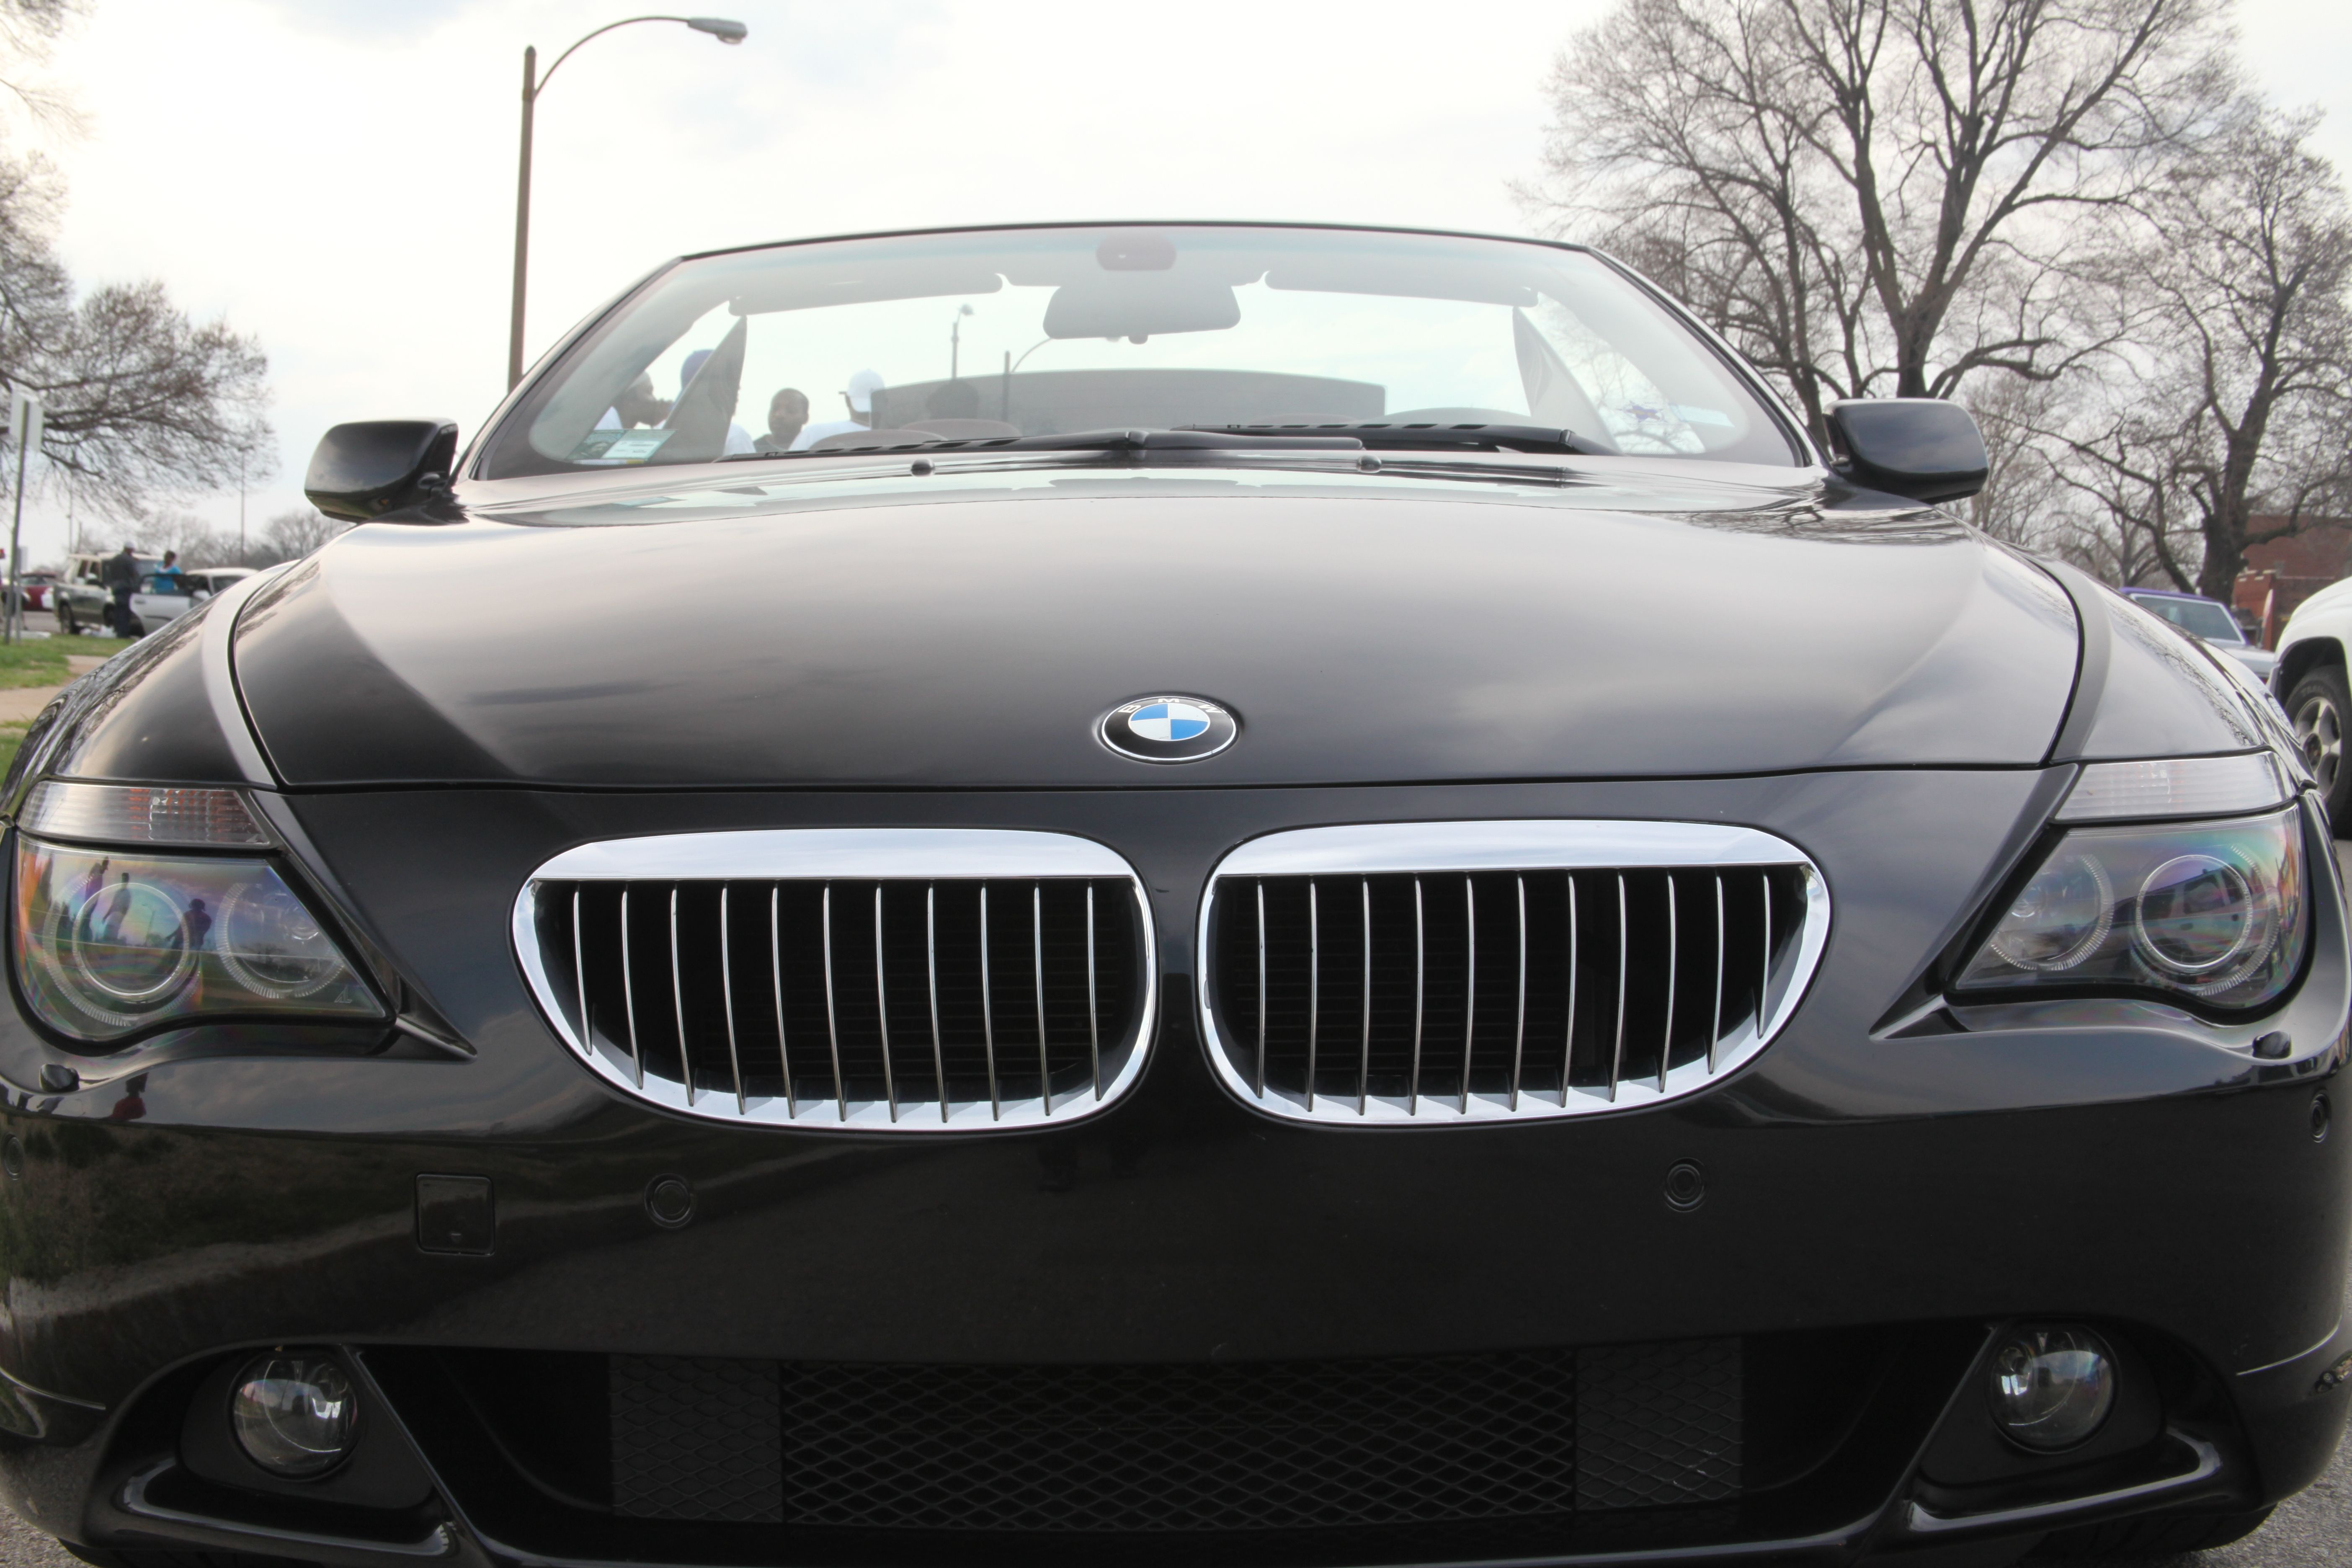 style popular secret new used in louis stunning at the to motors best serving bmw and charges of leads witness double exotic u for iid midwest dismissal st trends gateway